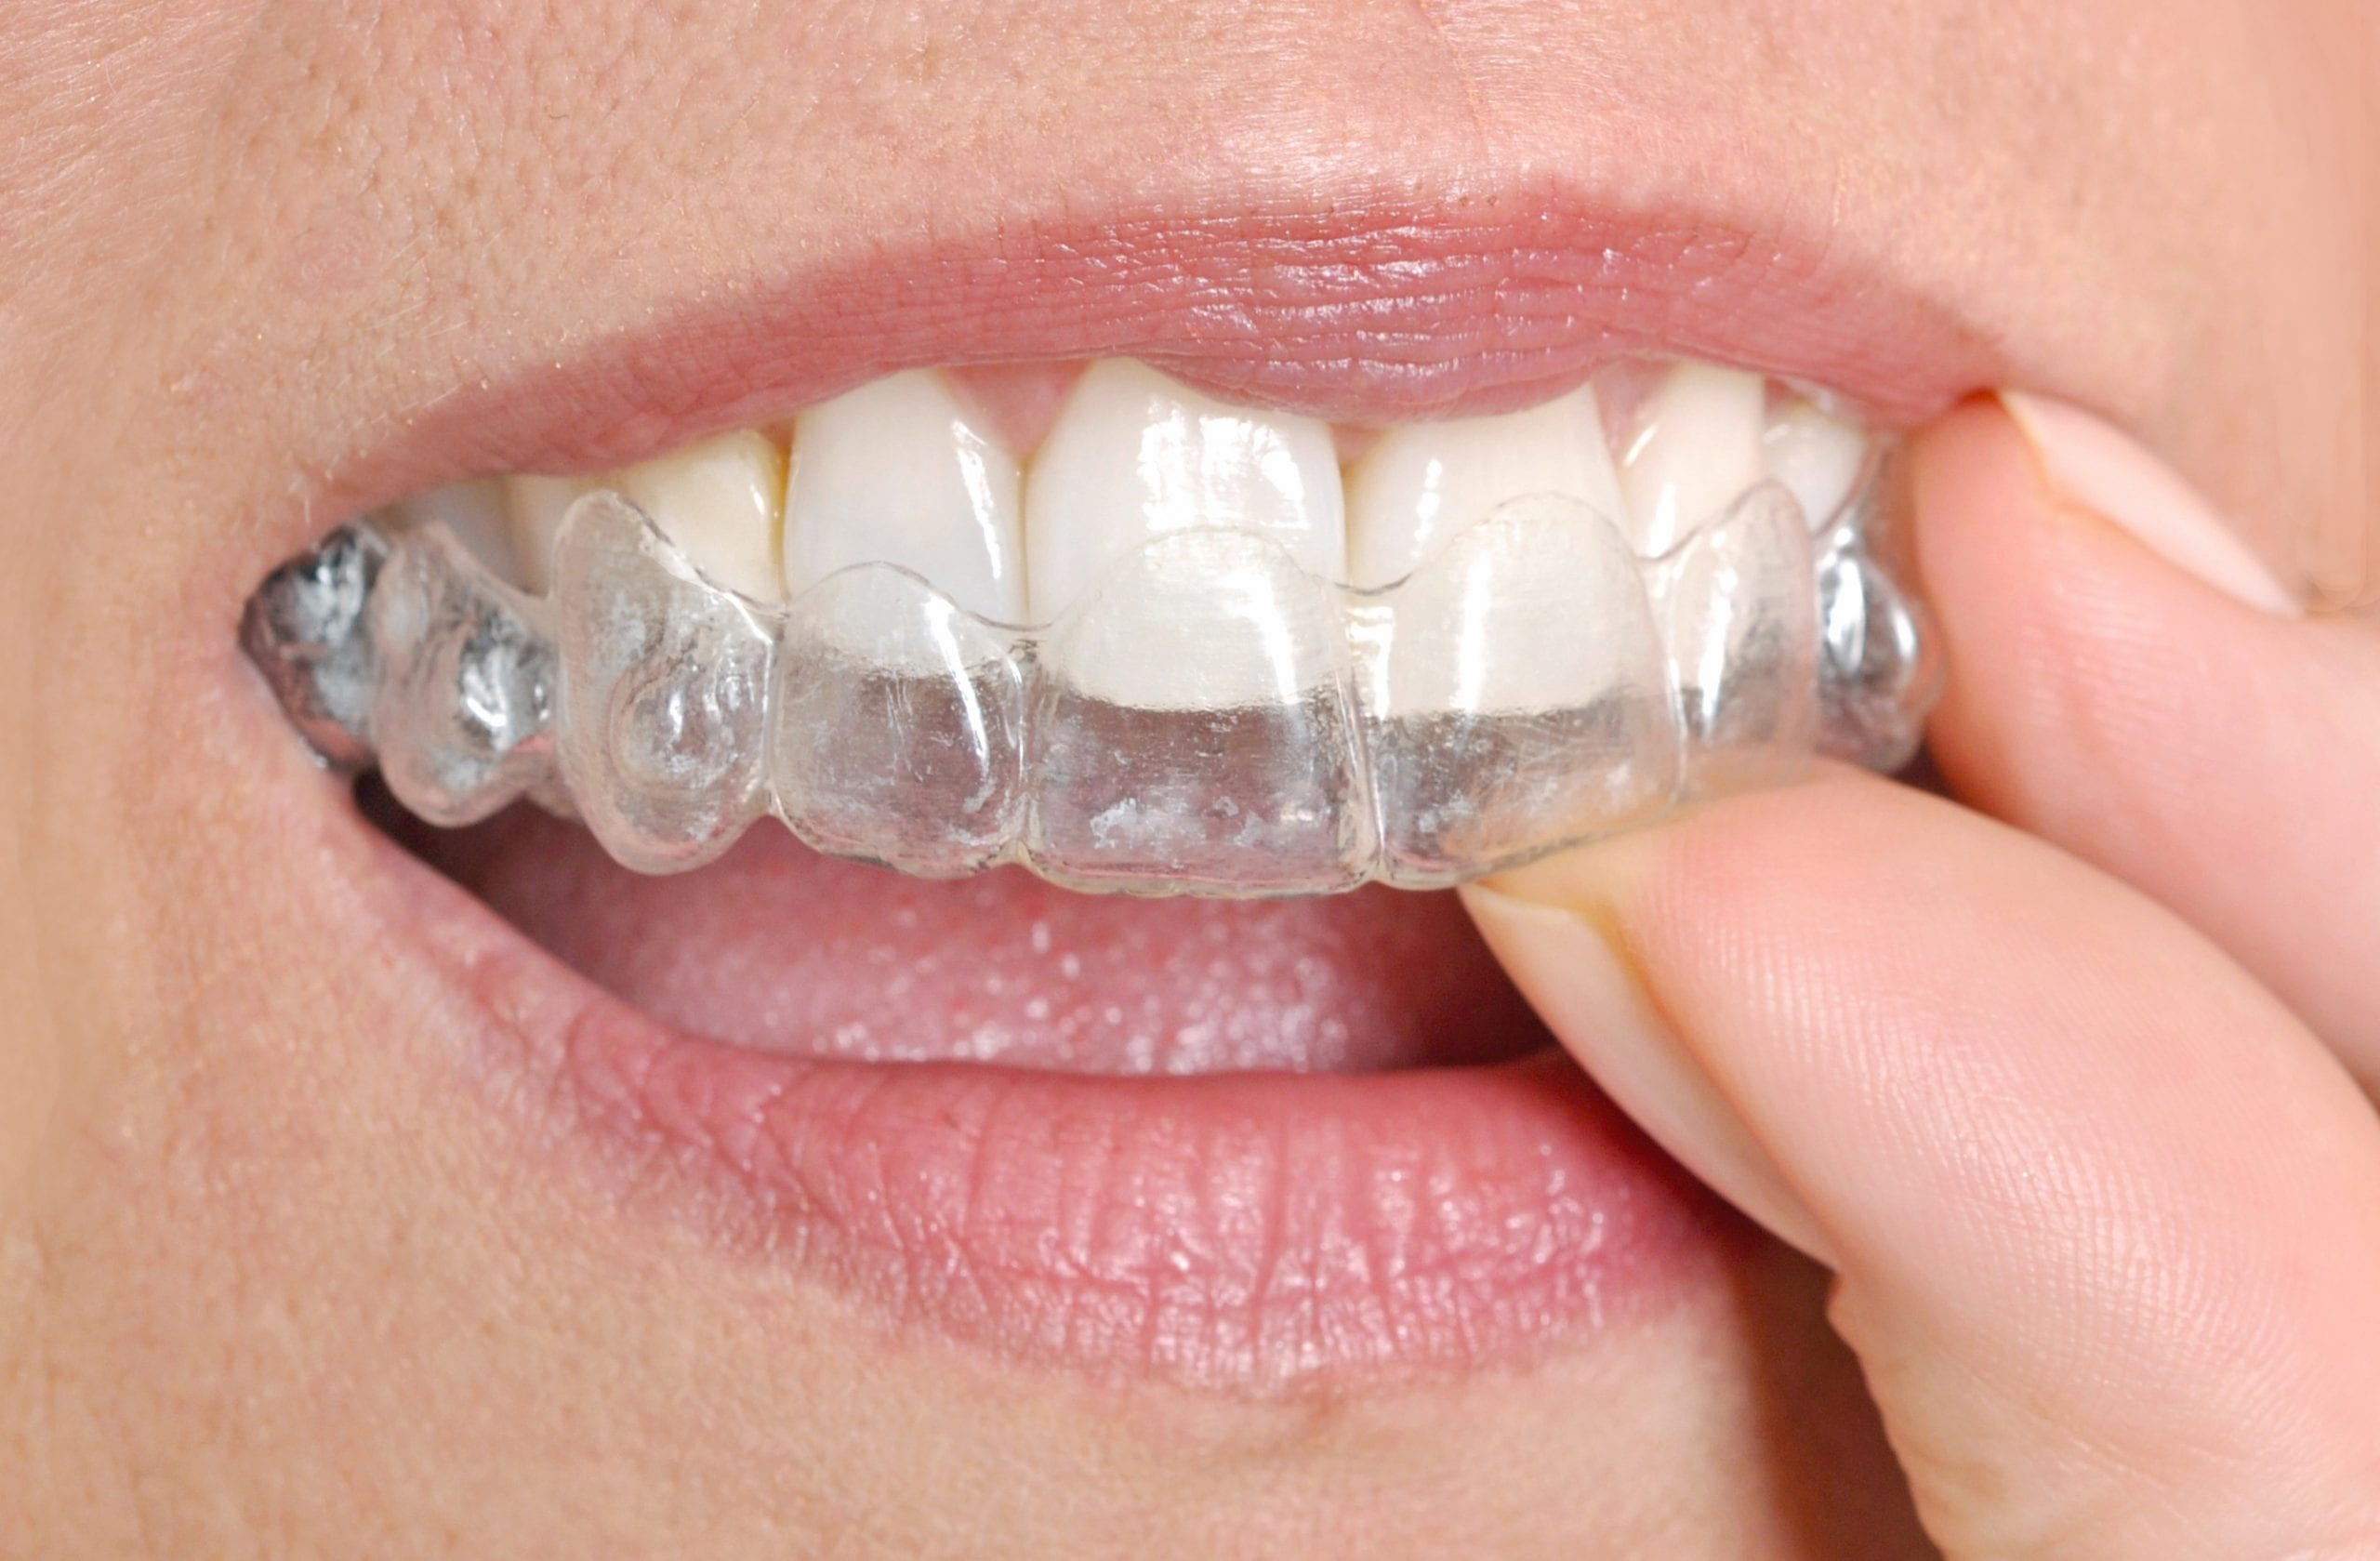 Is your smile not perfect? Have you been thinking about getting braces in Boulder, CO to get a straighter smile but worried about what they might look like? Well, have you considered Invisalign? Invisalign is a great way to get a straighter smile discreetly. Boulder dental designs Boulder, CO Dr. John Montoya woman-putting-in-her-invisible-braces-G67LFVW